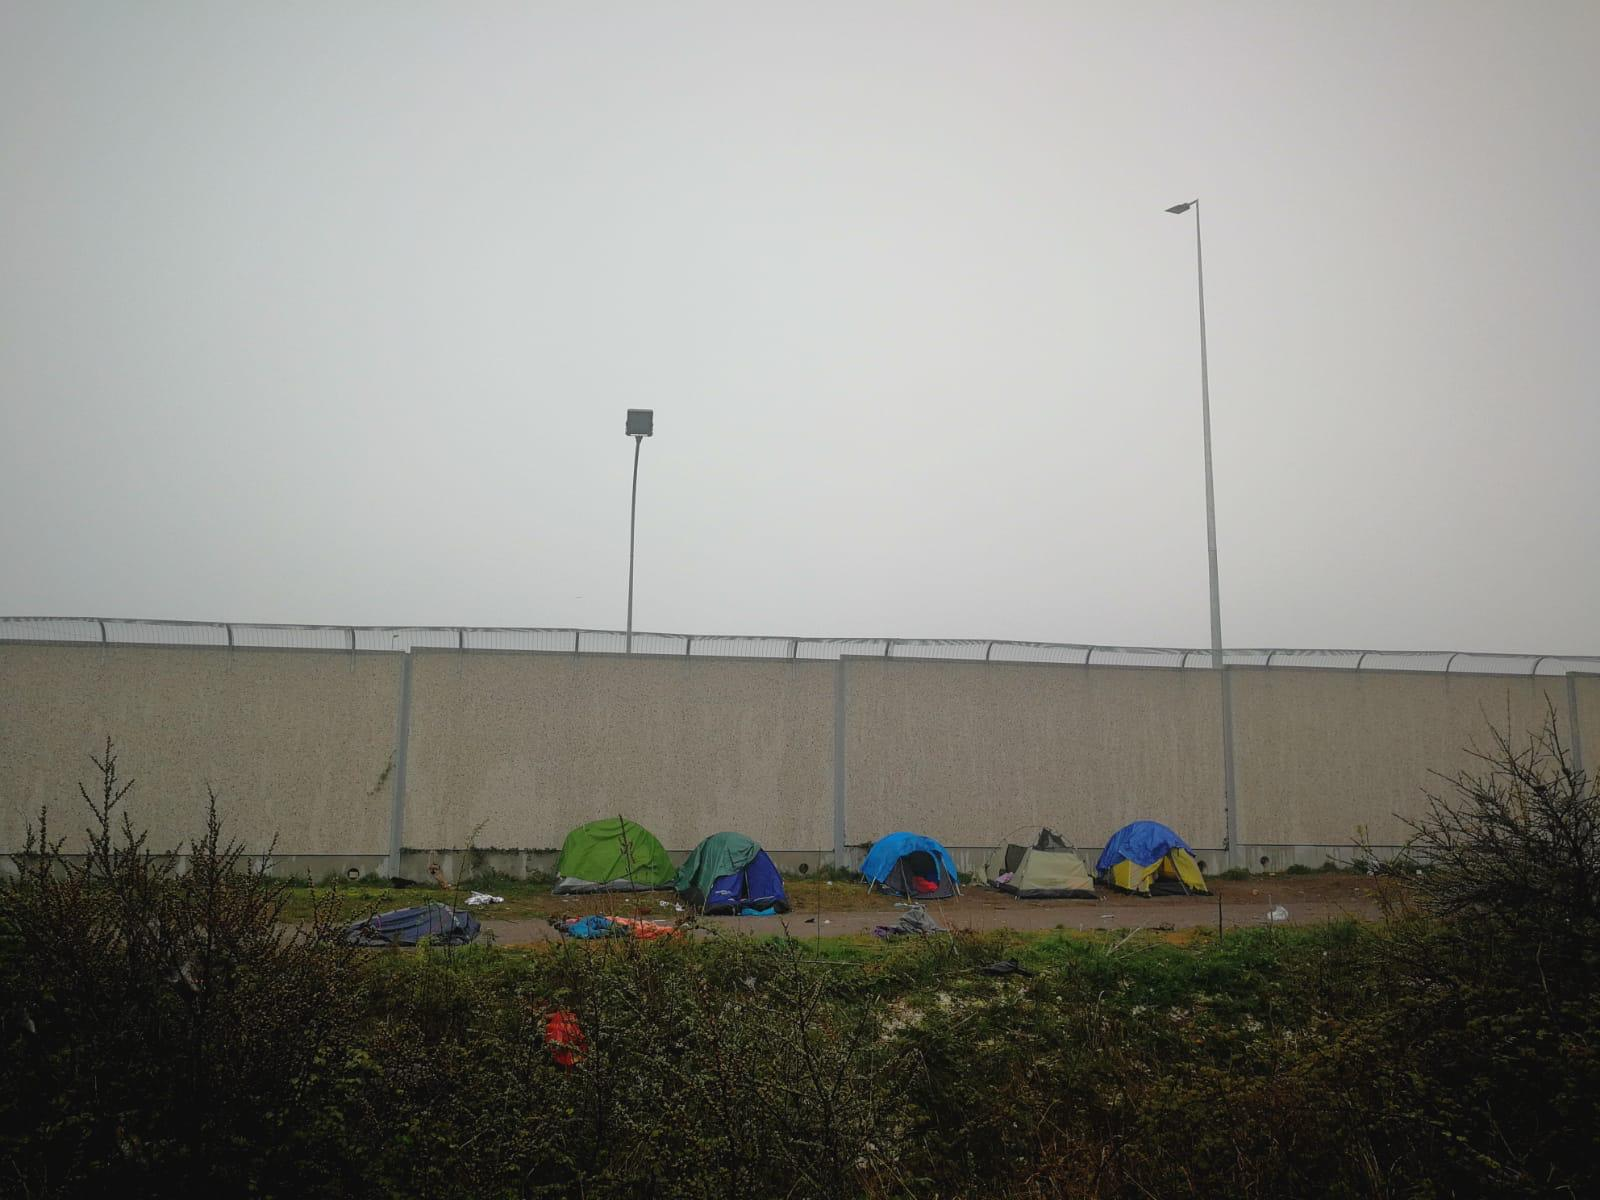 British man facing up to five years in prison for recording police abuse against refugees in Calais